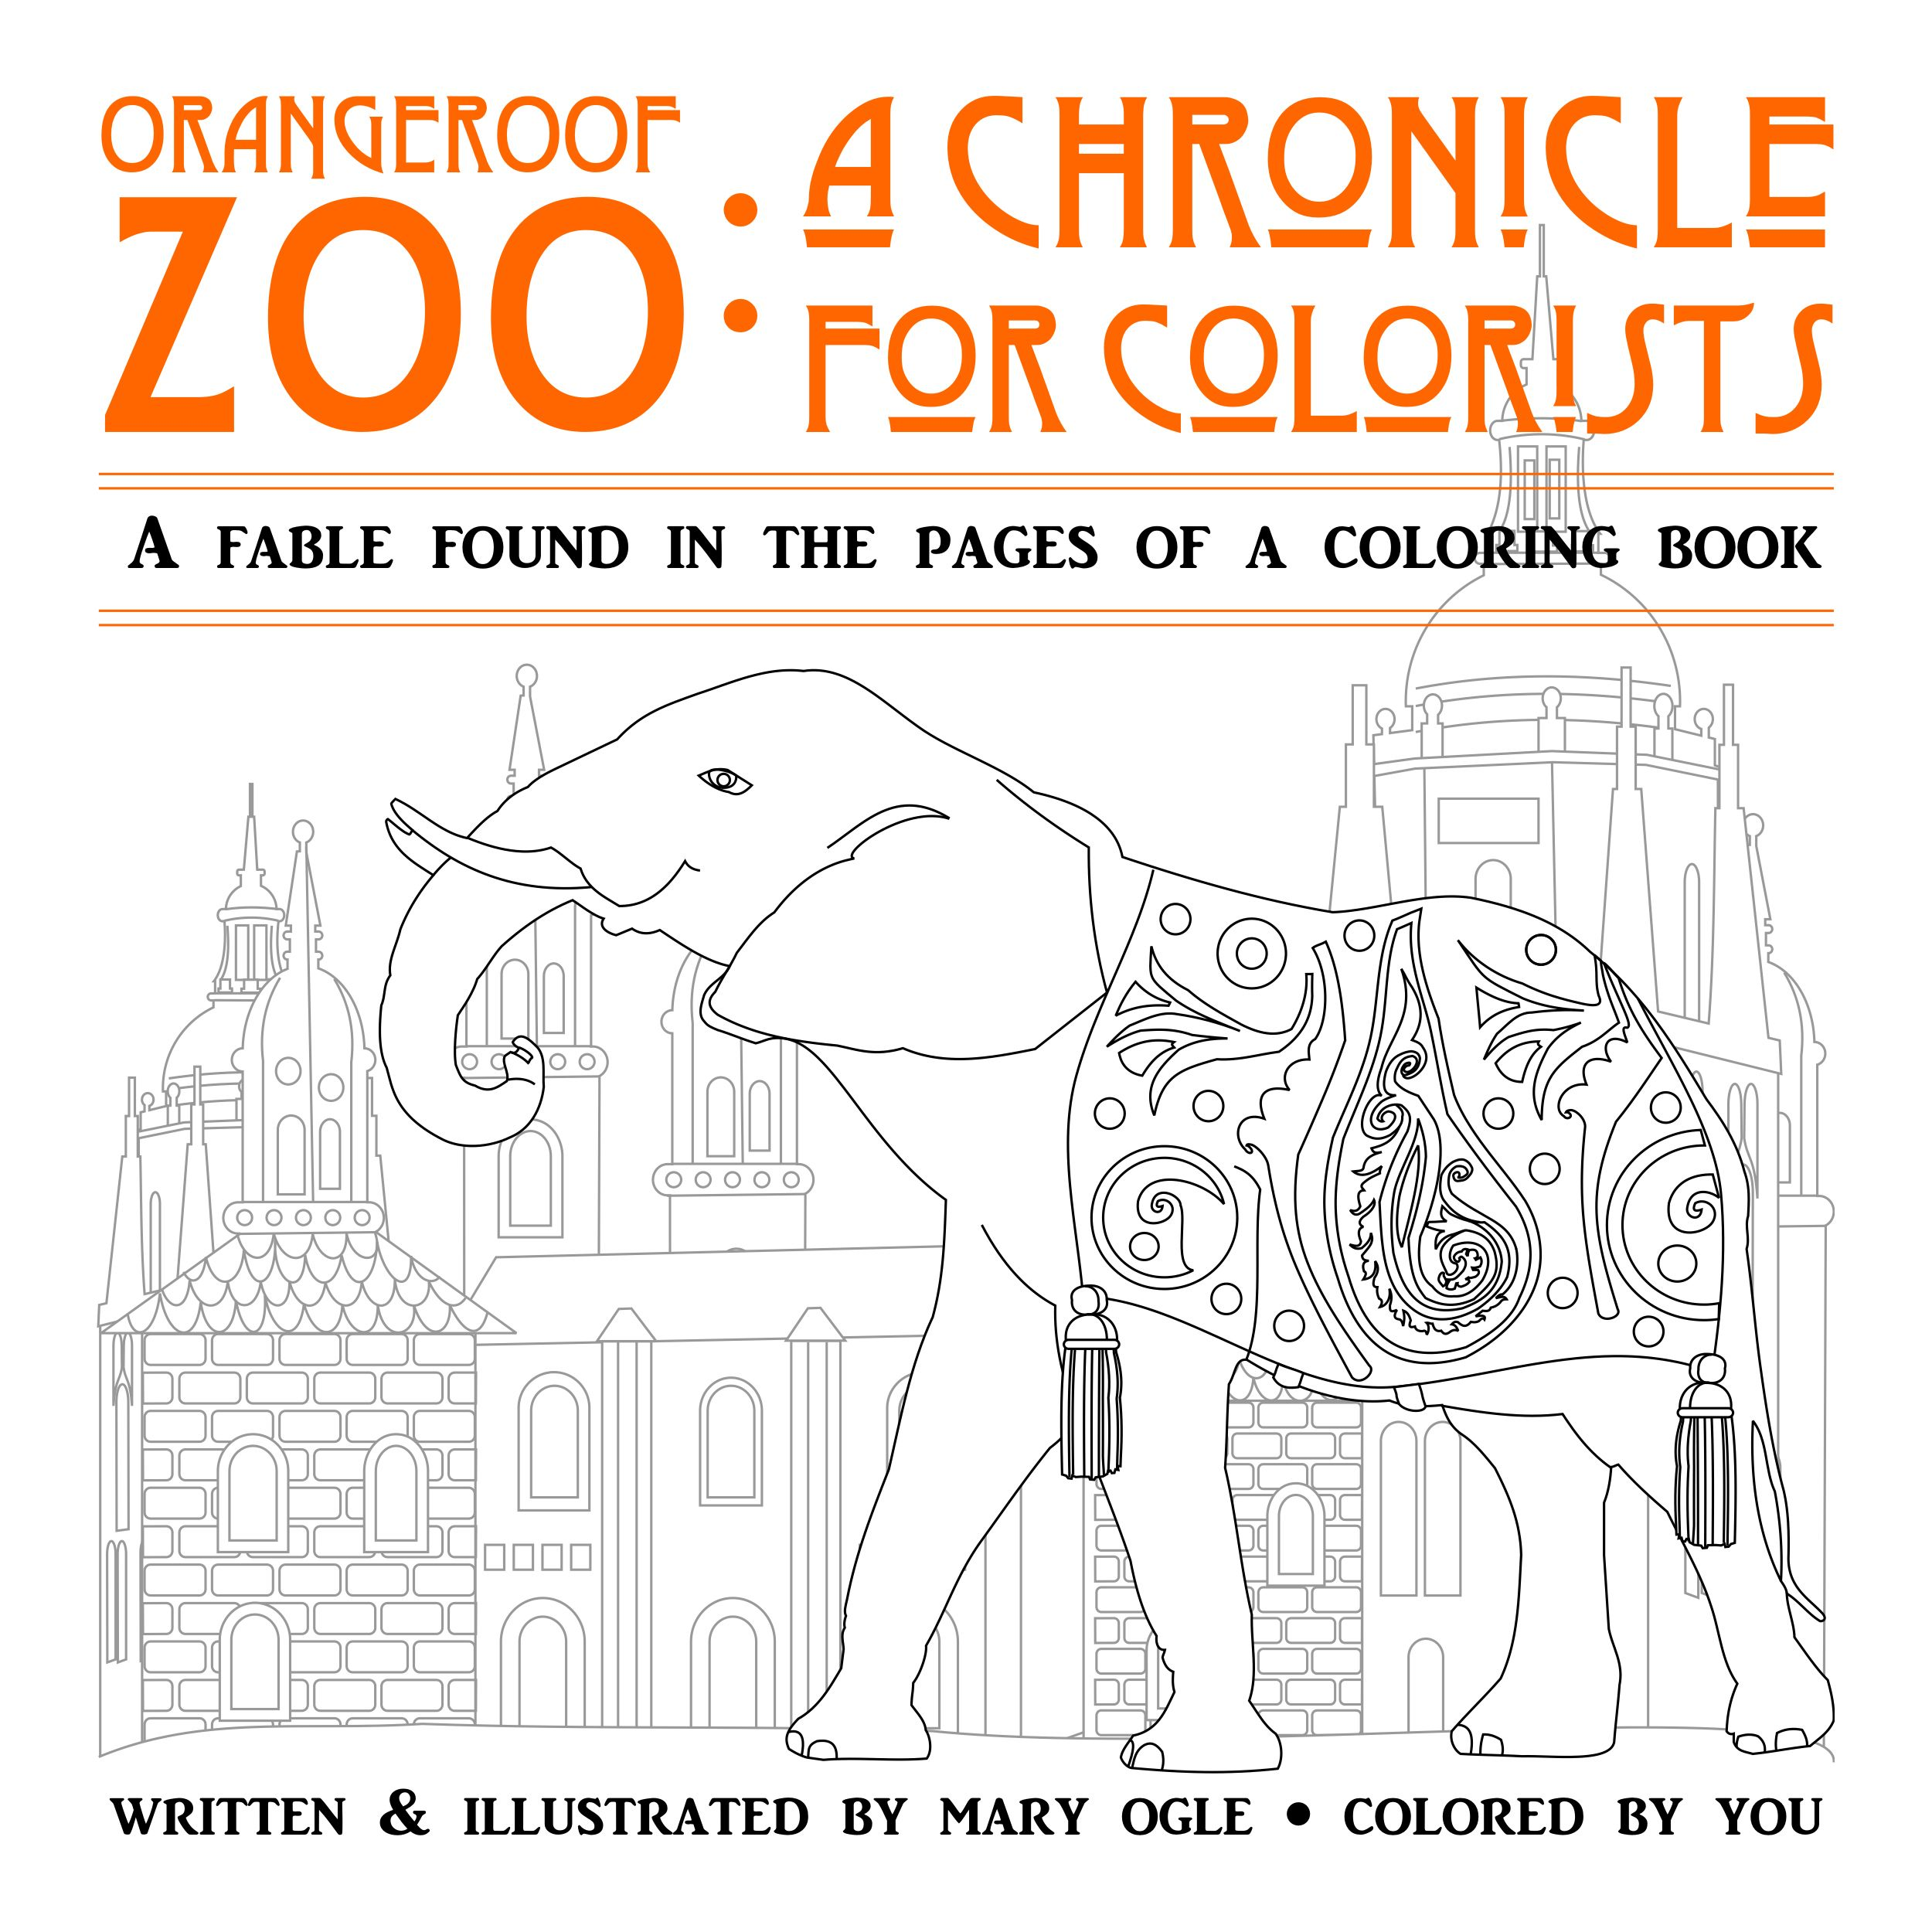 Find This Pin And More On Coloring Books For Adults From BookGoodies By Bookgoodies